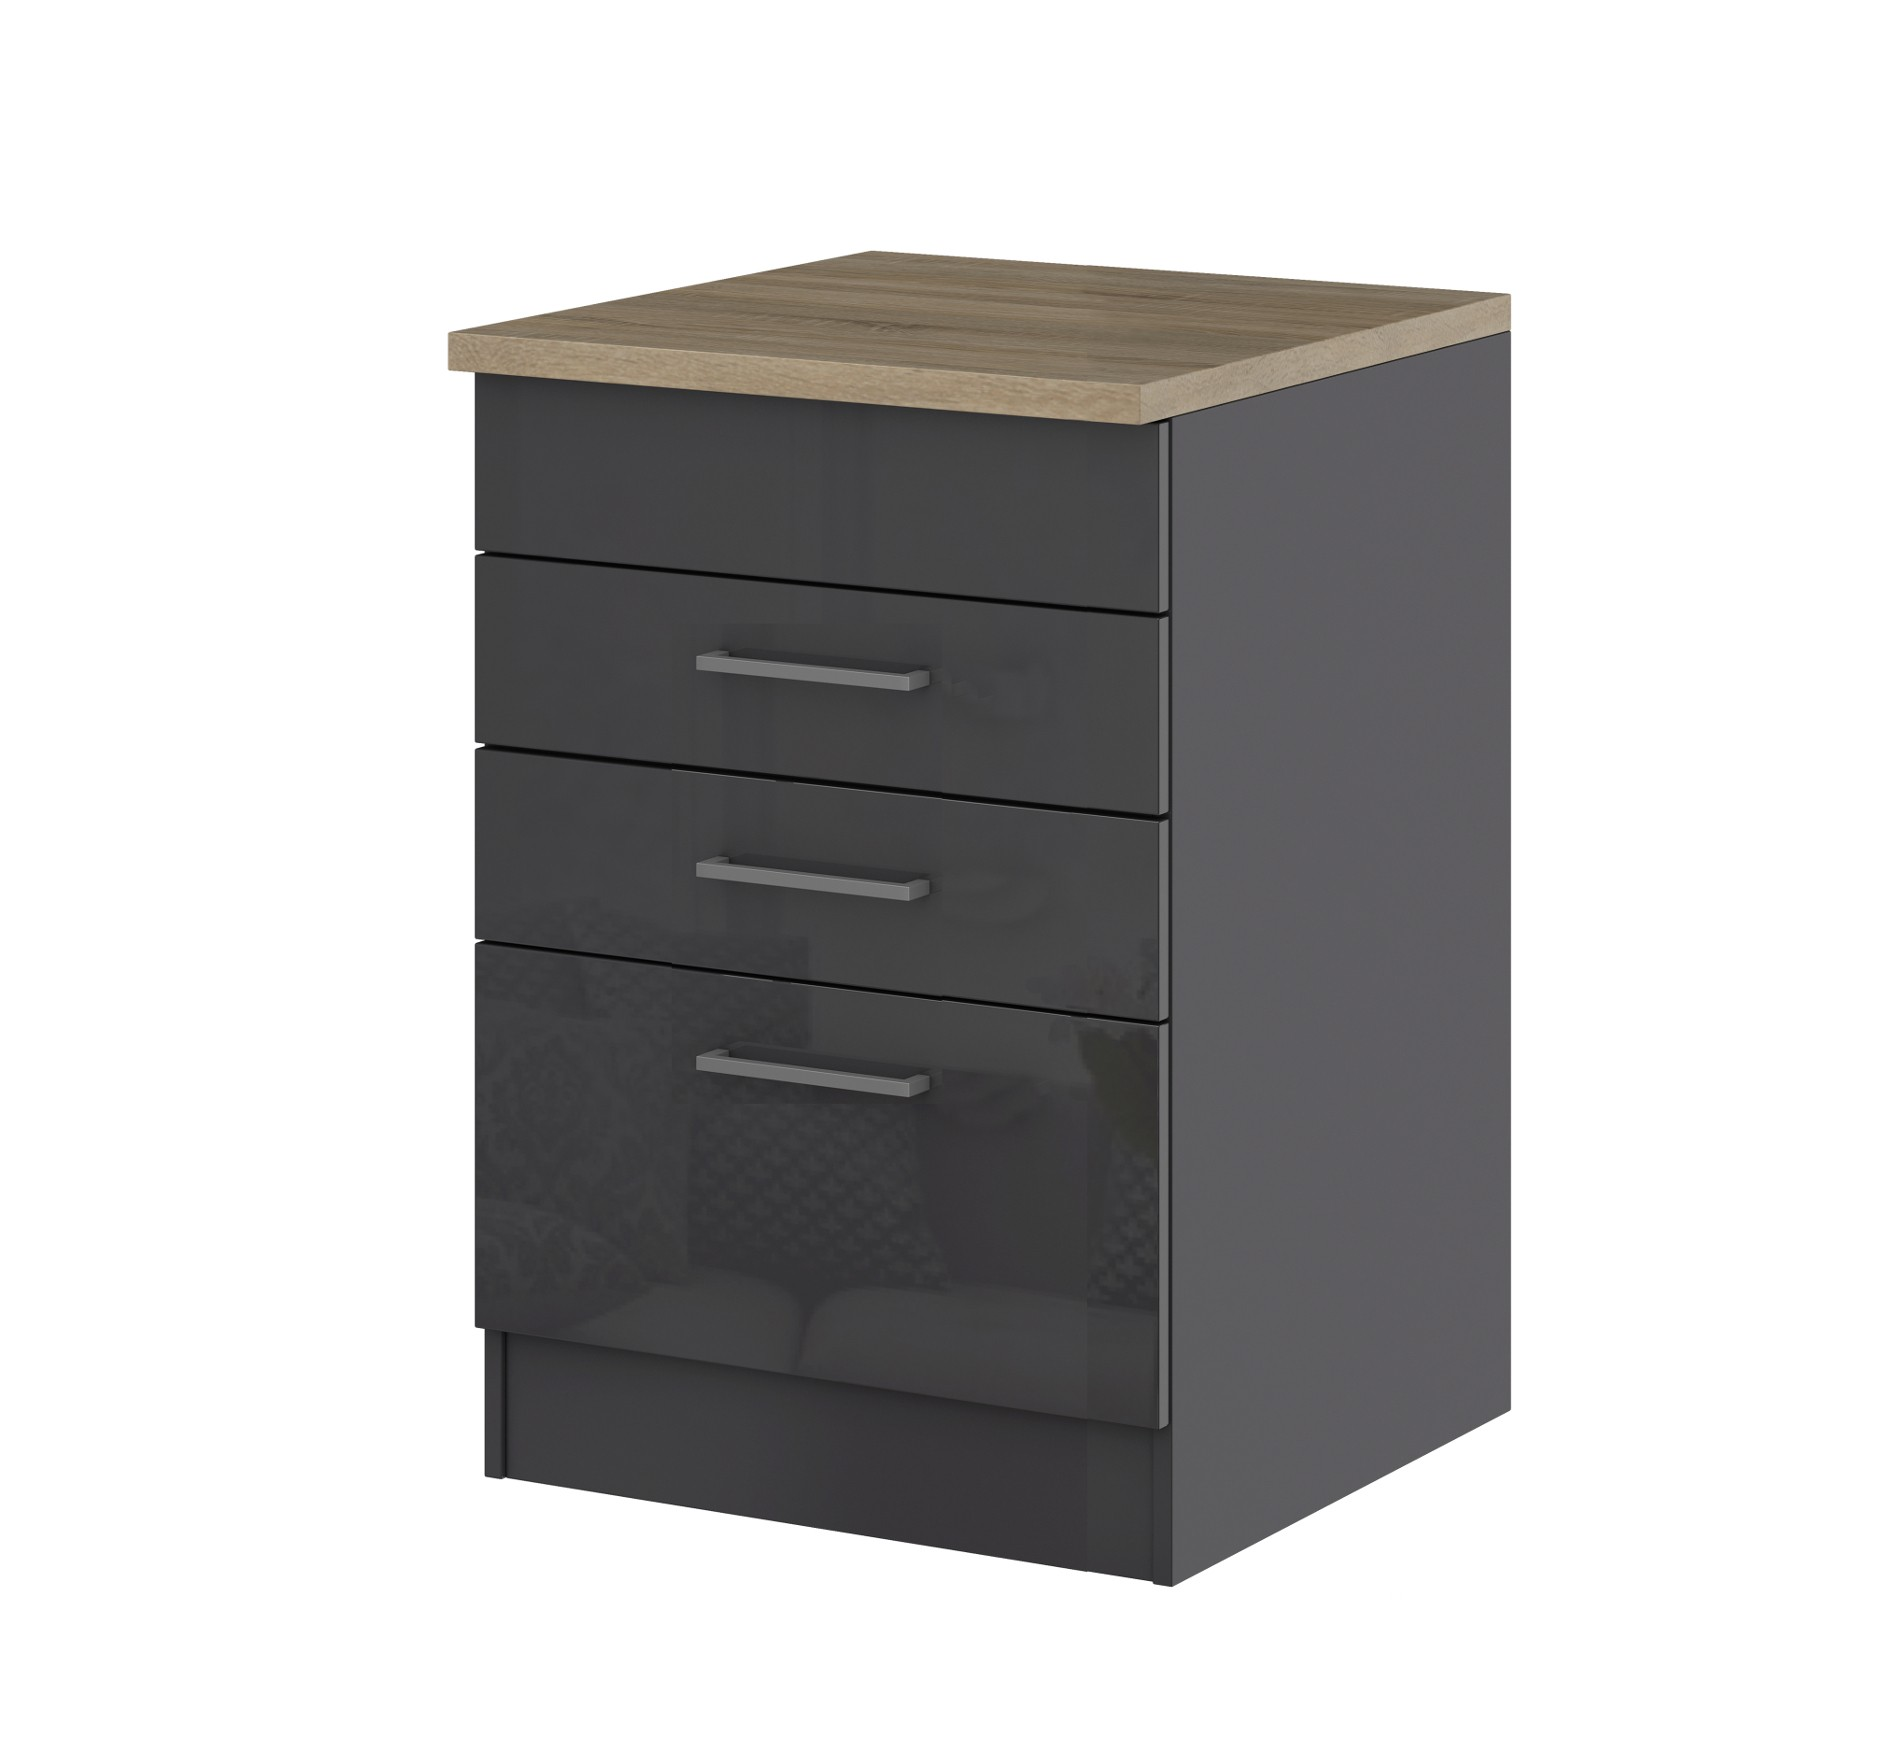 k chen unterschrank m nchen f r kochfeld 60 cm breit hochglanz grau k che k chen unterschr nke. Black Bedroom Furniture Sets. Home Design Ideas